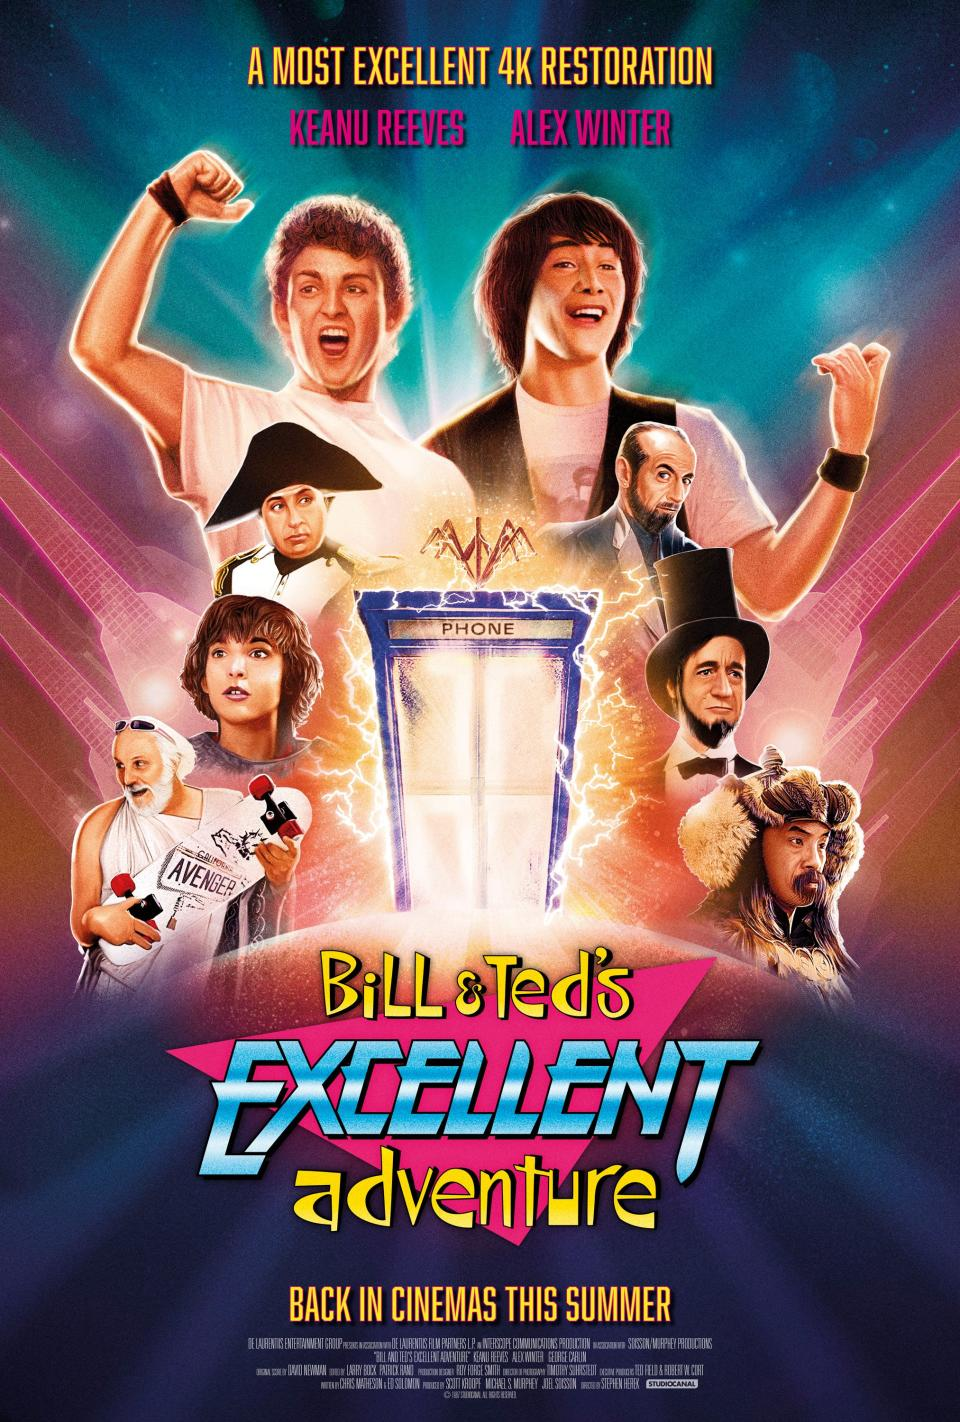 A poster for the 4K re-release of 1989's Bill & Ted's Excellent Adventure. (Studiocanal)